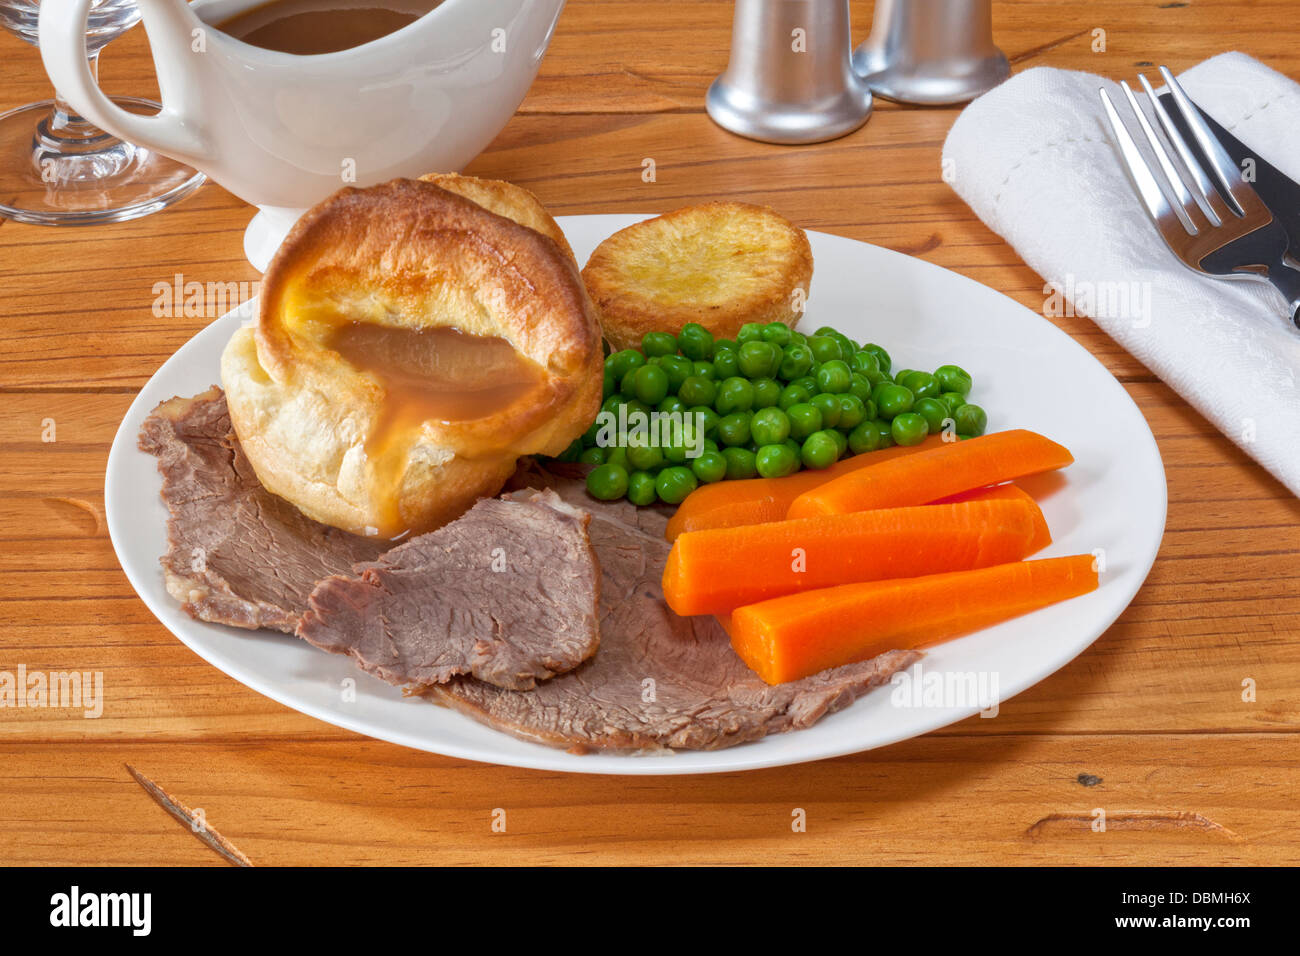 Roast Beef and Yorkshire Pudding - with gravy, roast potatoes, peas and carrots. - Stock Image